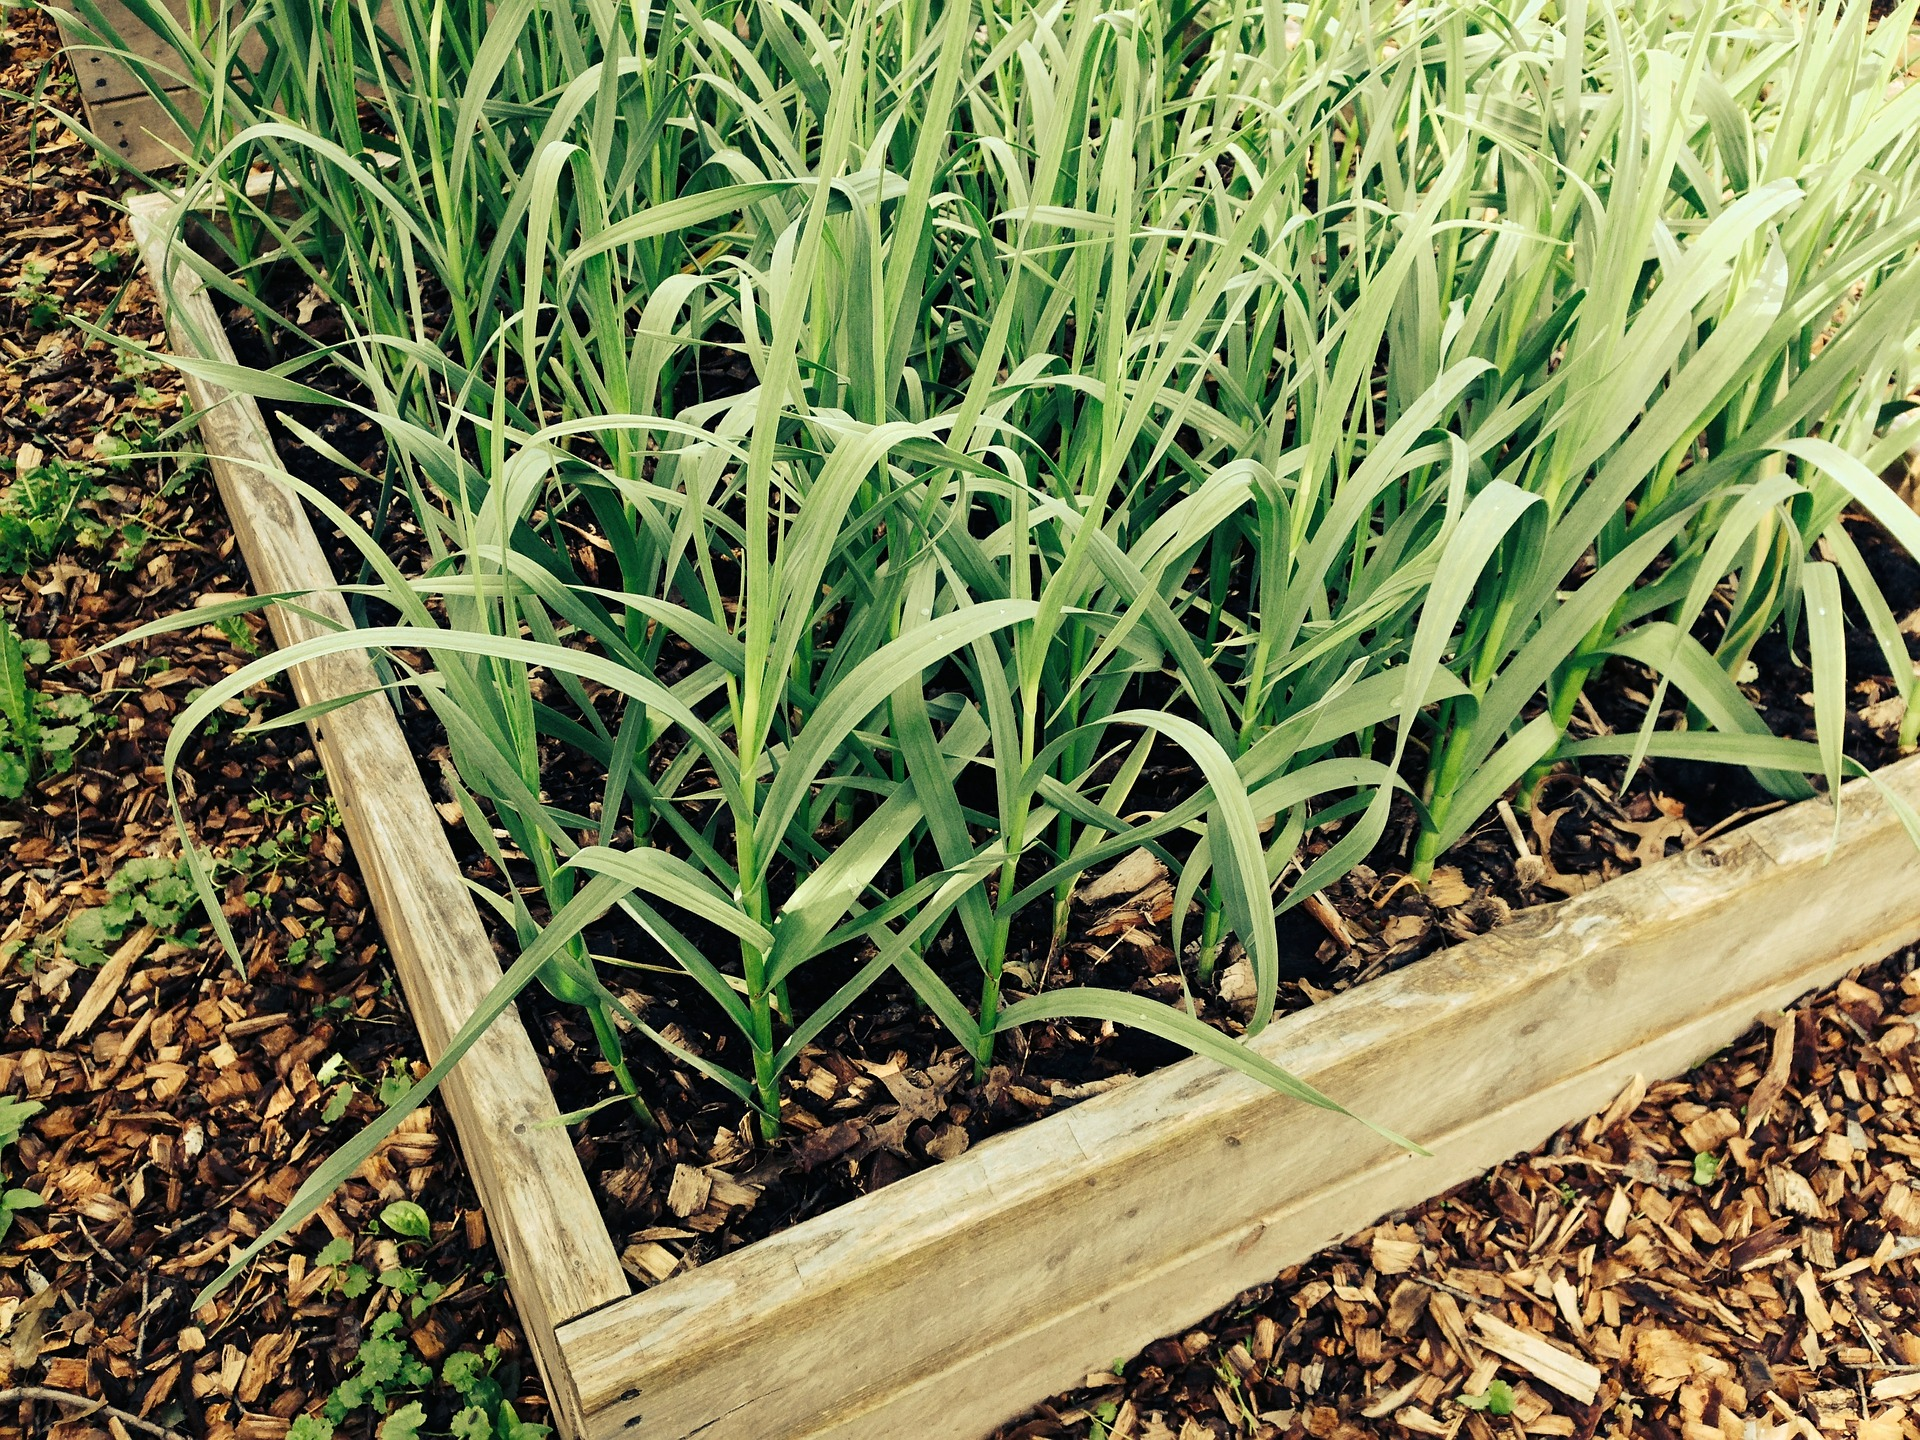 If you have the longing for homegrown produce, give raised beds a try.